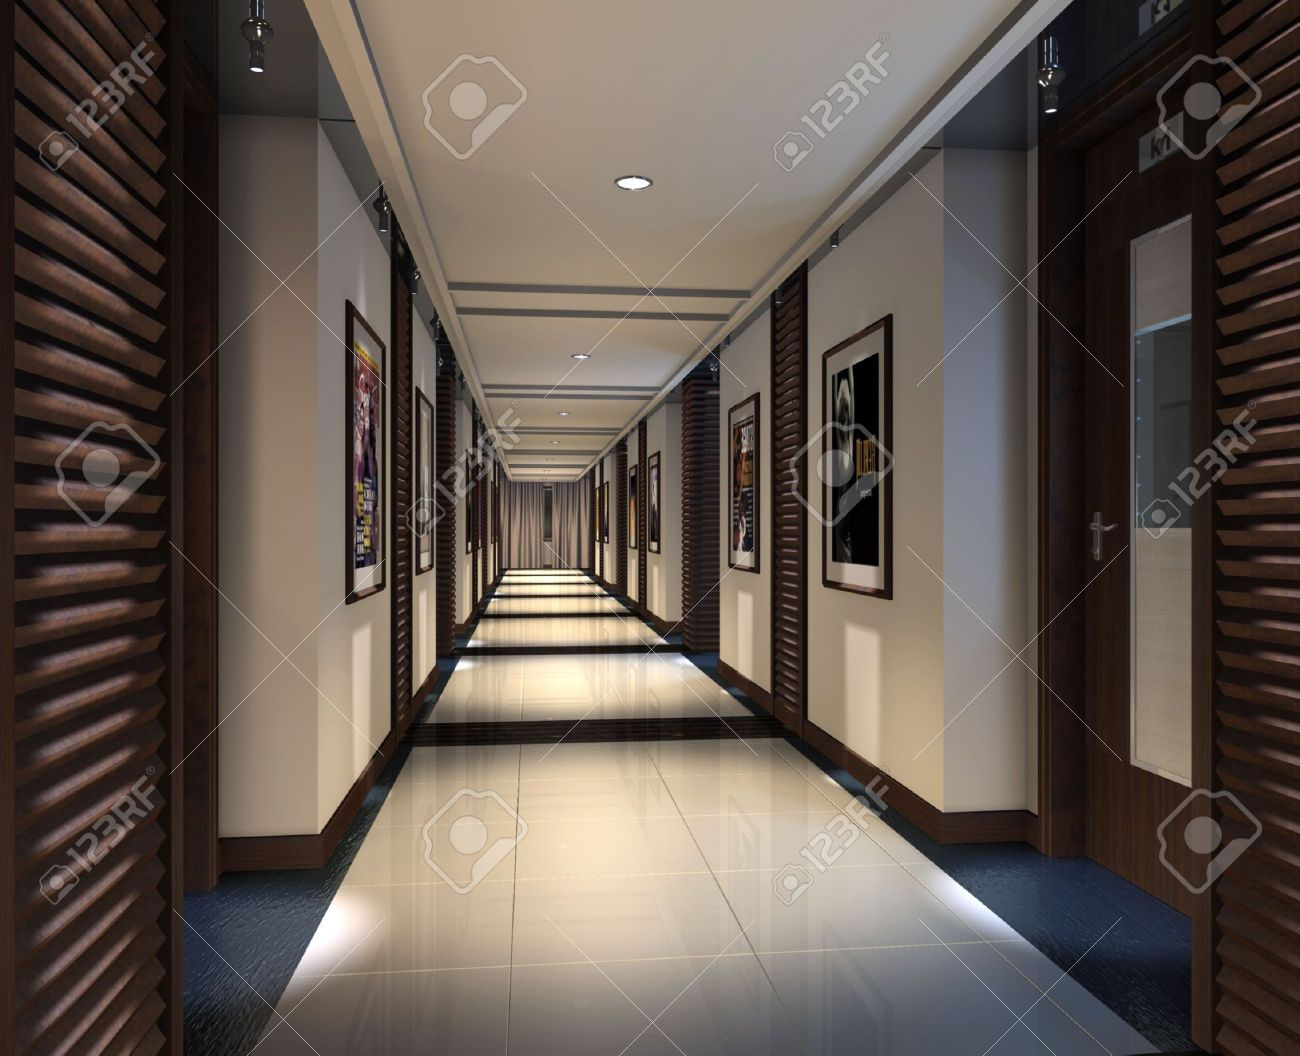 modern corridor interior image (3d rendering) stock photo, picture